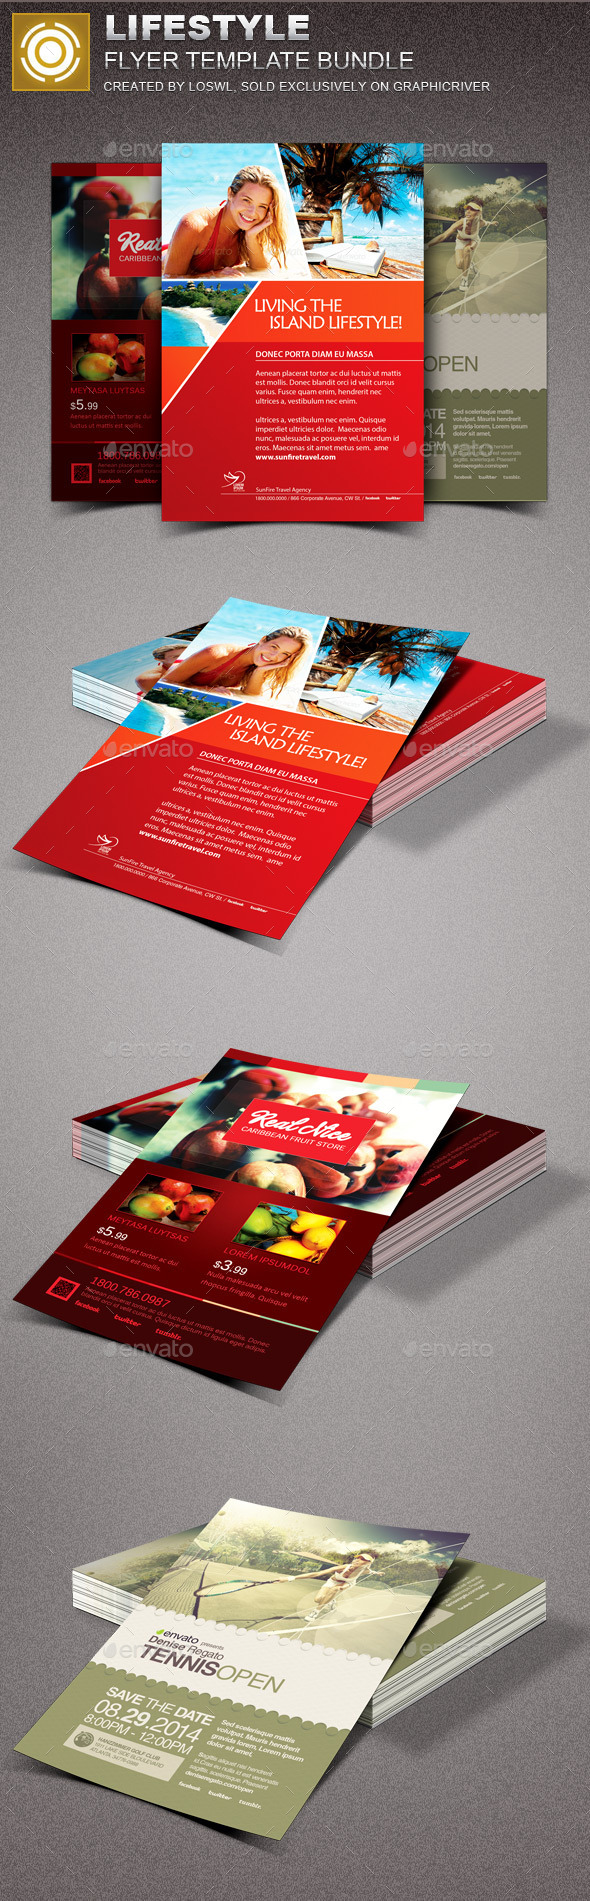 Lifestyle Flyer Template Bundle - Events Flyers